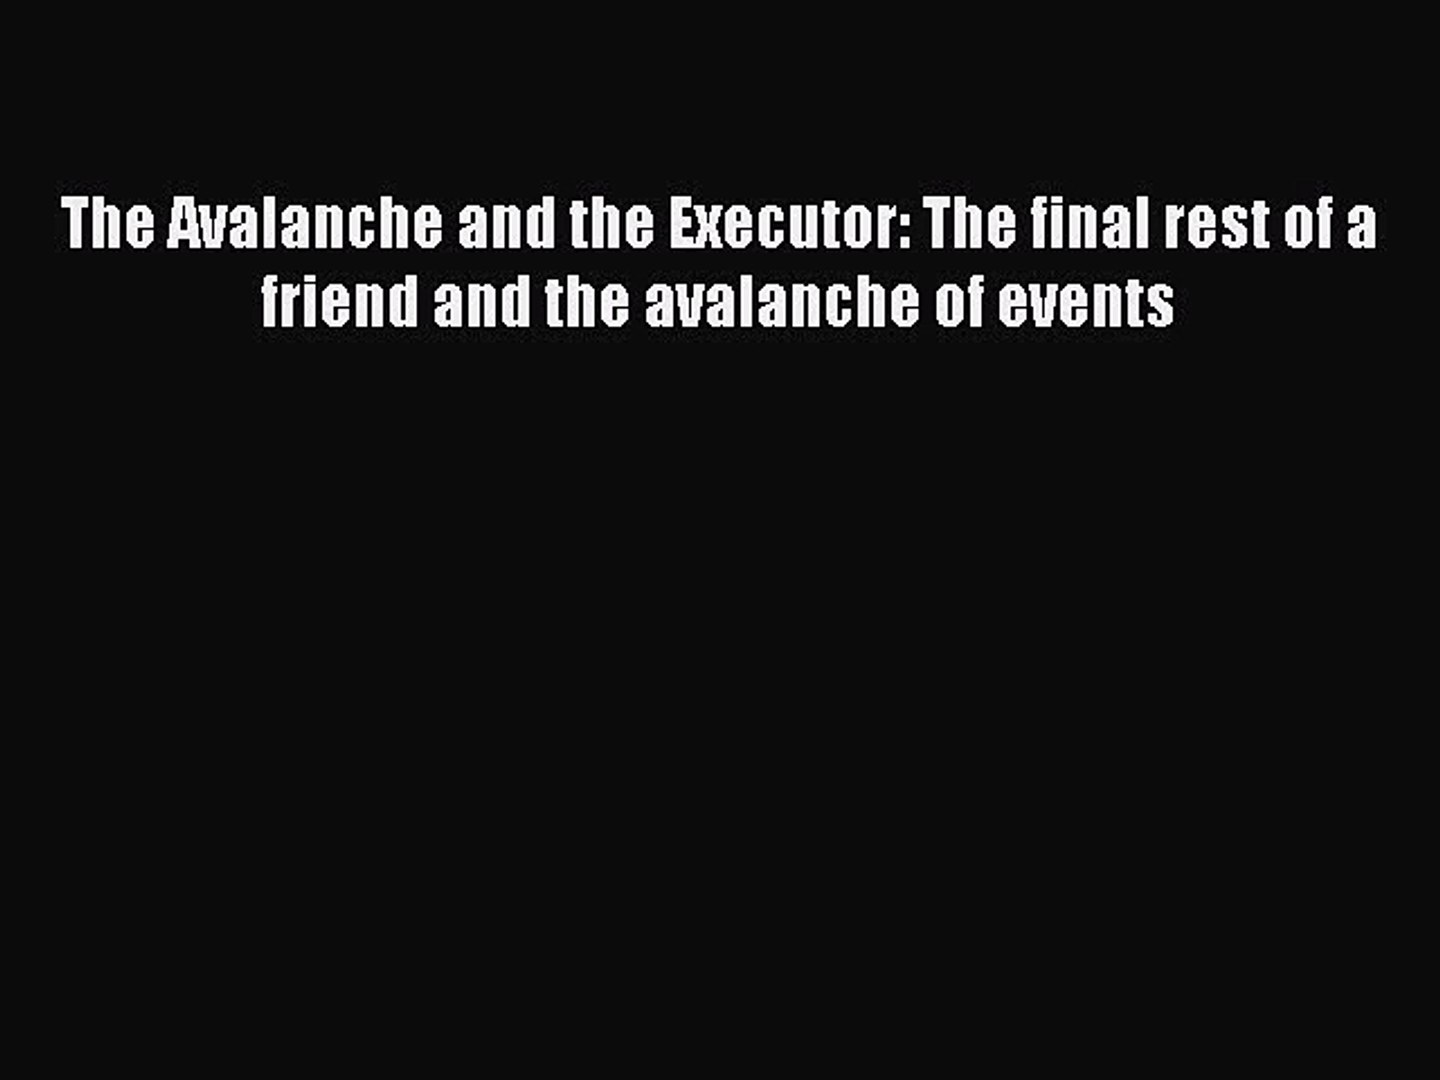 Read The Avalanche and the Executor: The final rest of a friend and the avalanche of events